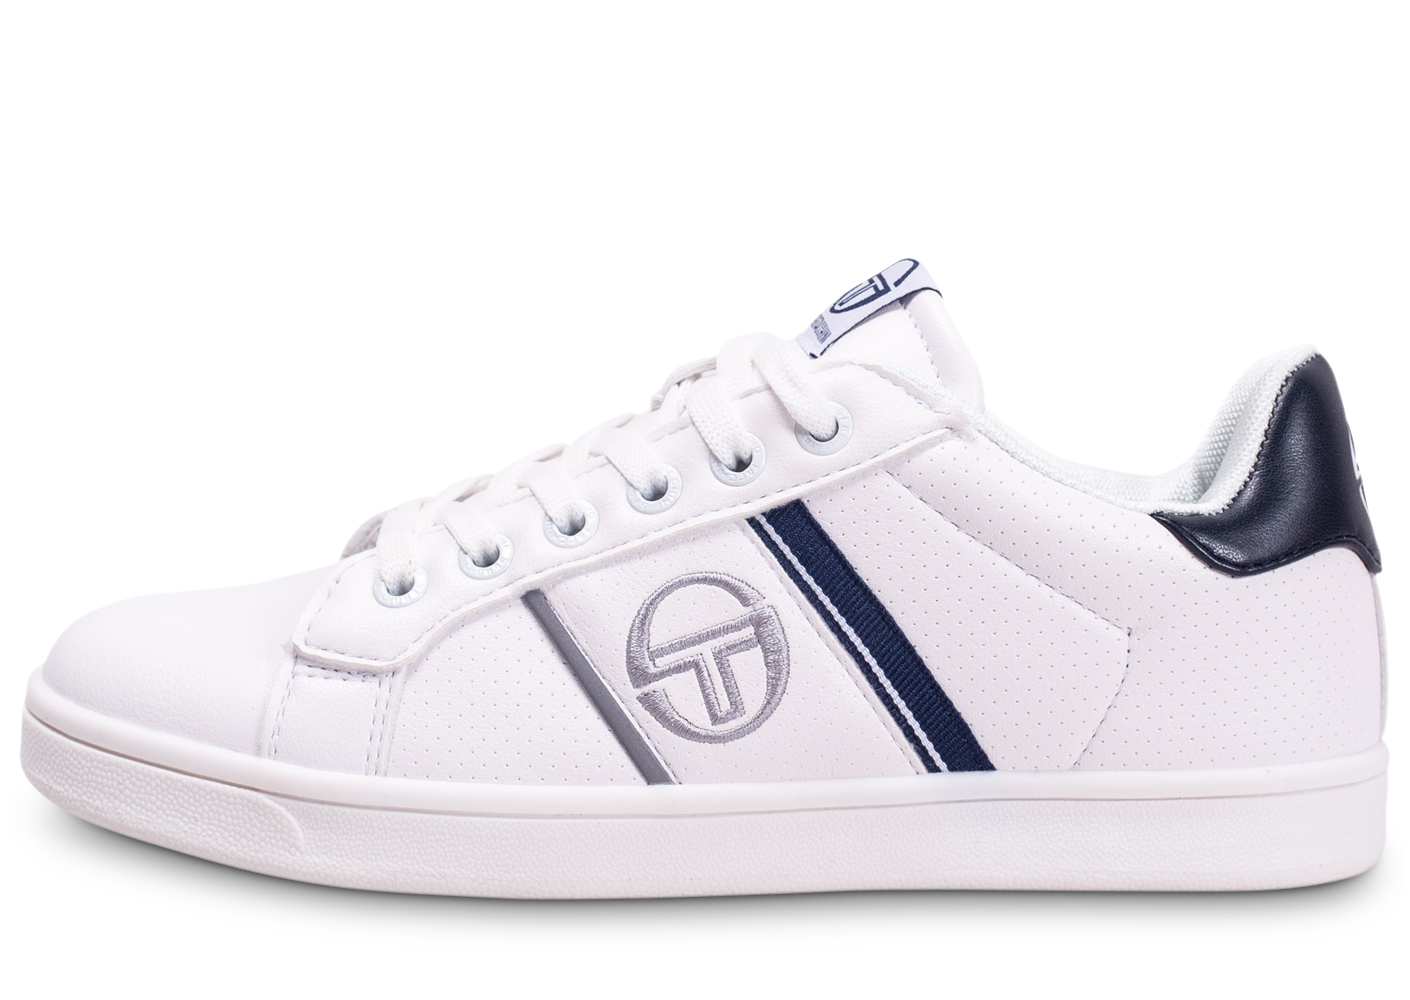 Sergio Tacchini Enfant Parigi Blanche Et Bleue Marine Junior Baskets